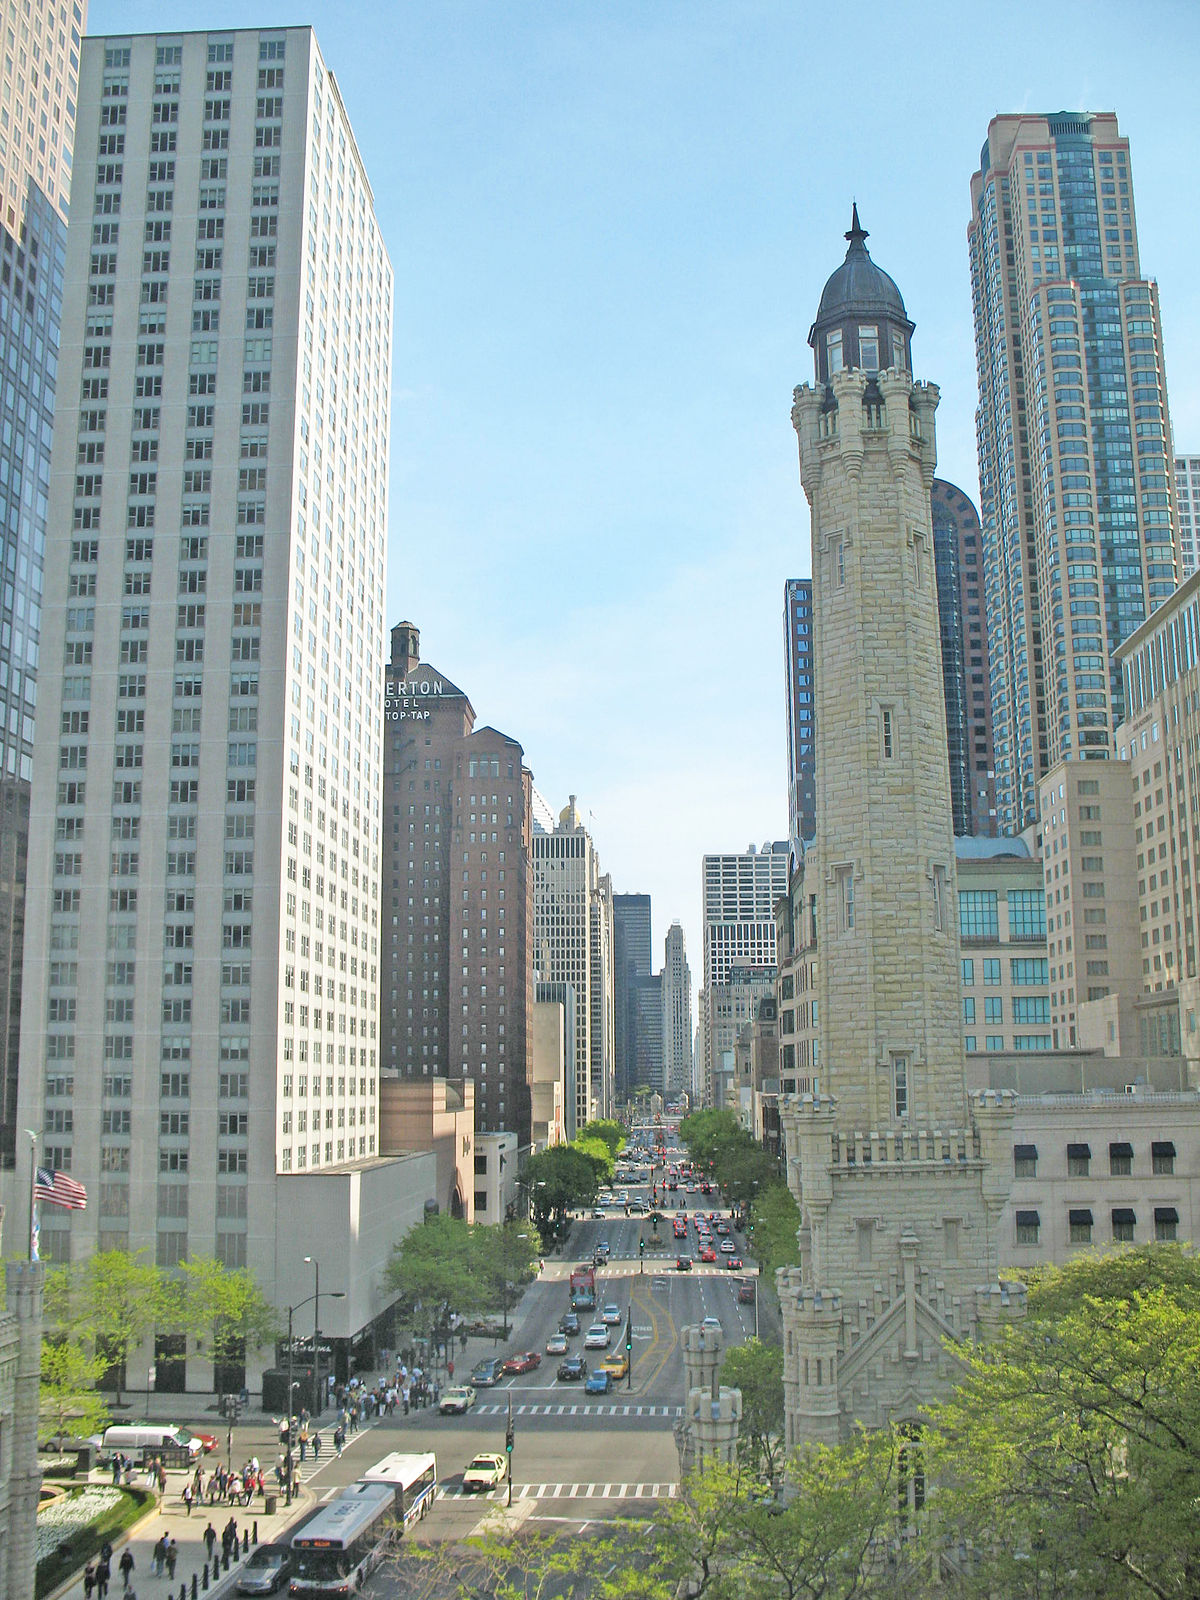 Checkout The Magnificent Mile in Downtown Chicago. With and abundance of stores and restaurants, you'll be able to feed your stomach and your closet. Shop til your heart's content and enjoy your time wandering through this incredible shopping district of Chicago.